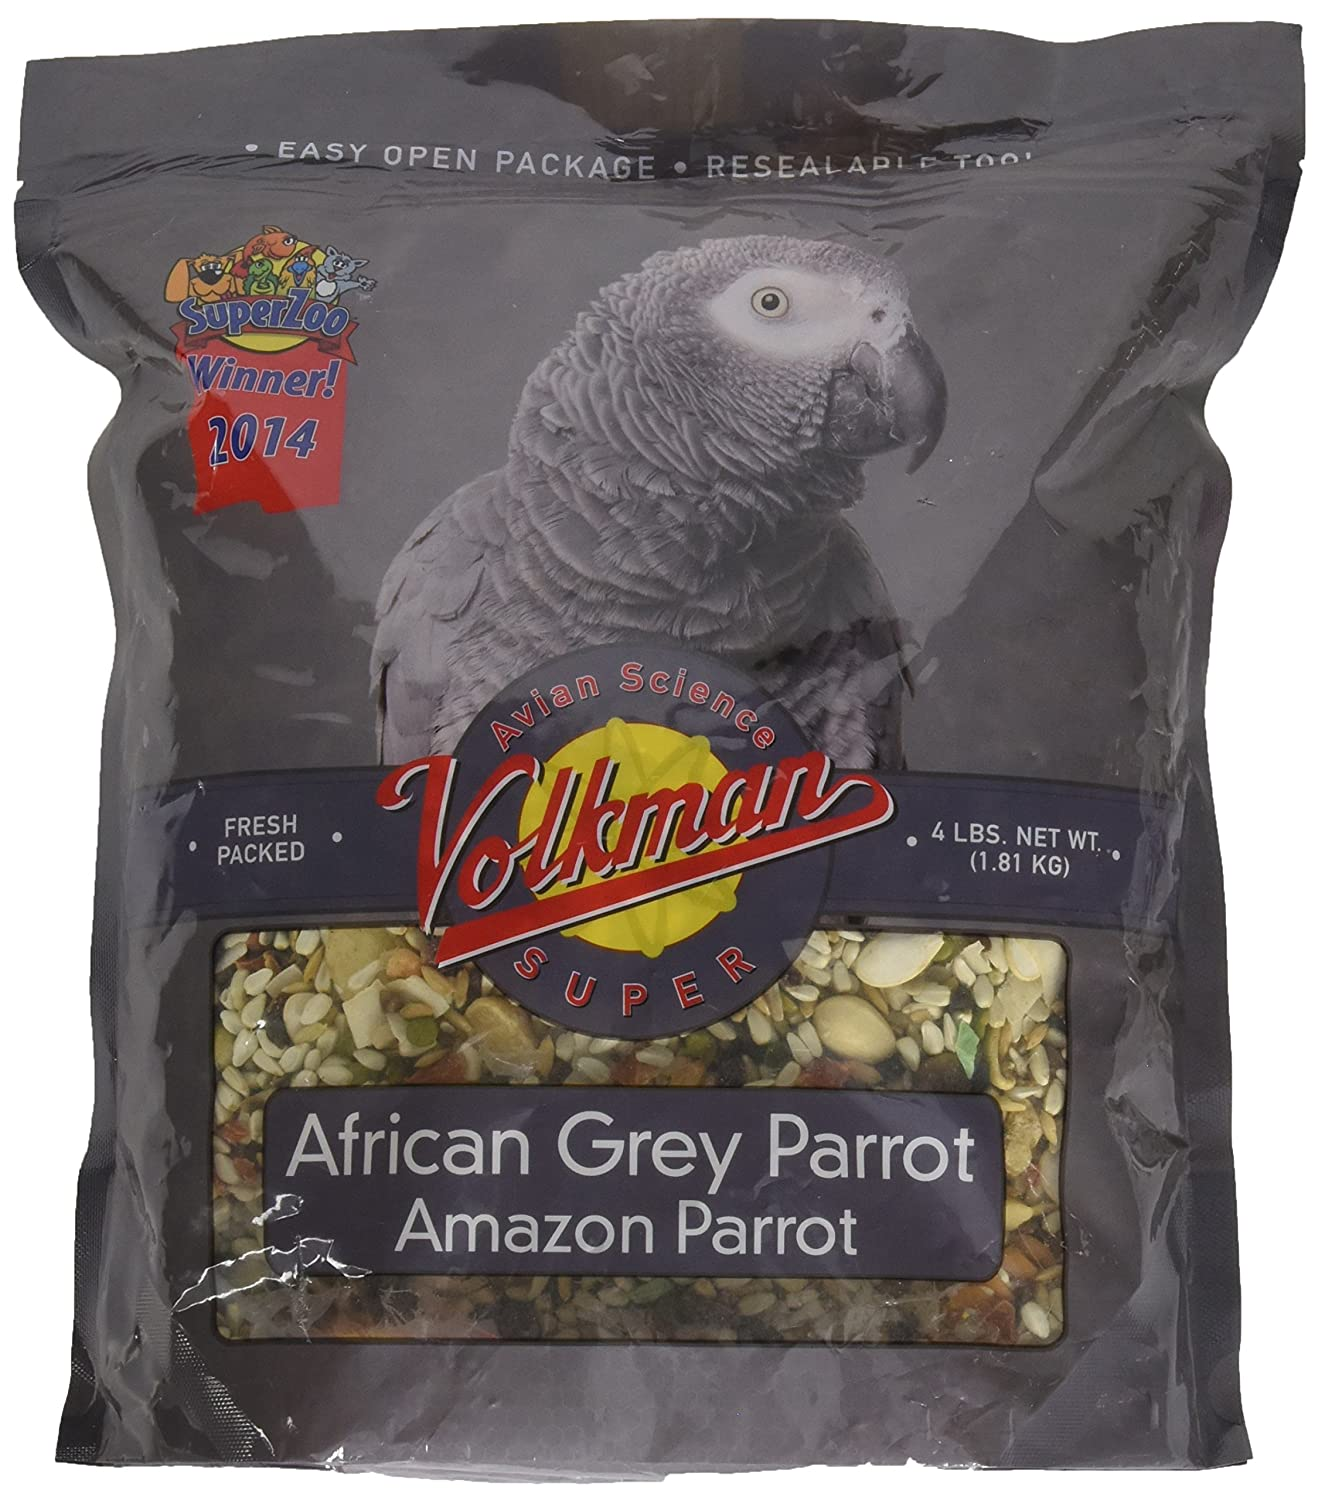 Parrot Amazon: feedback from owners and subtleties of content